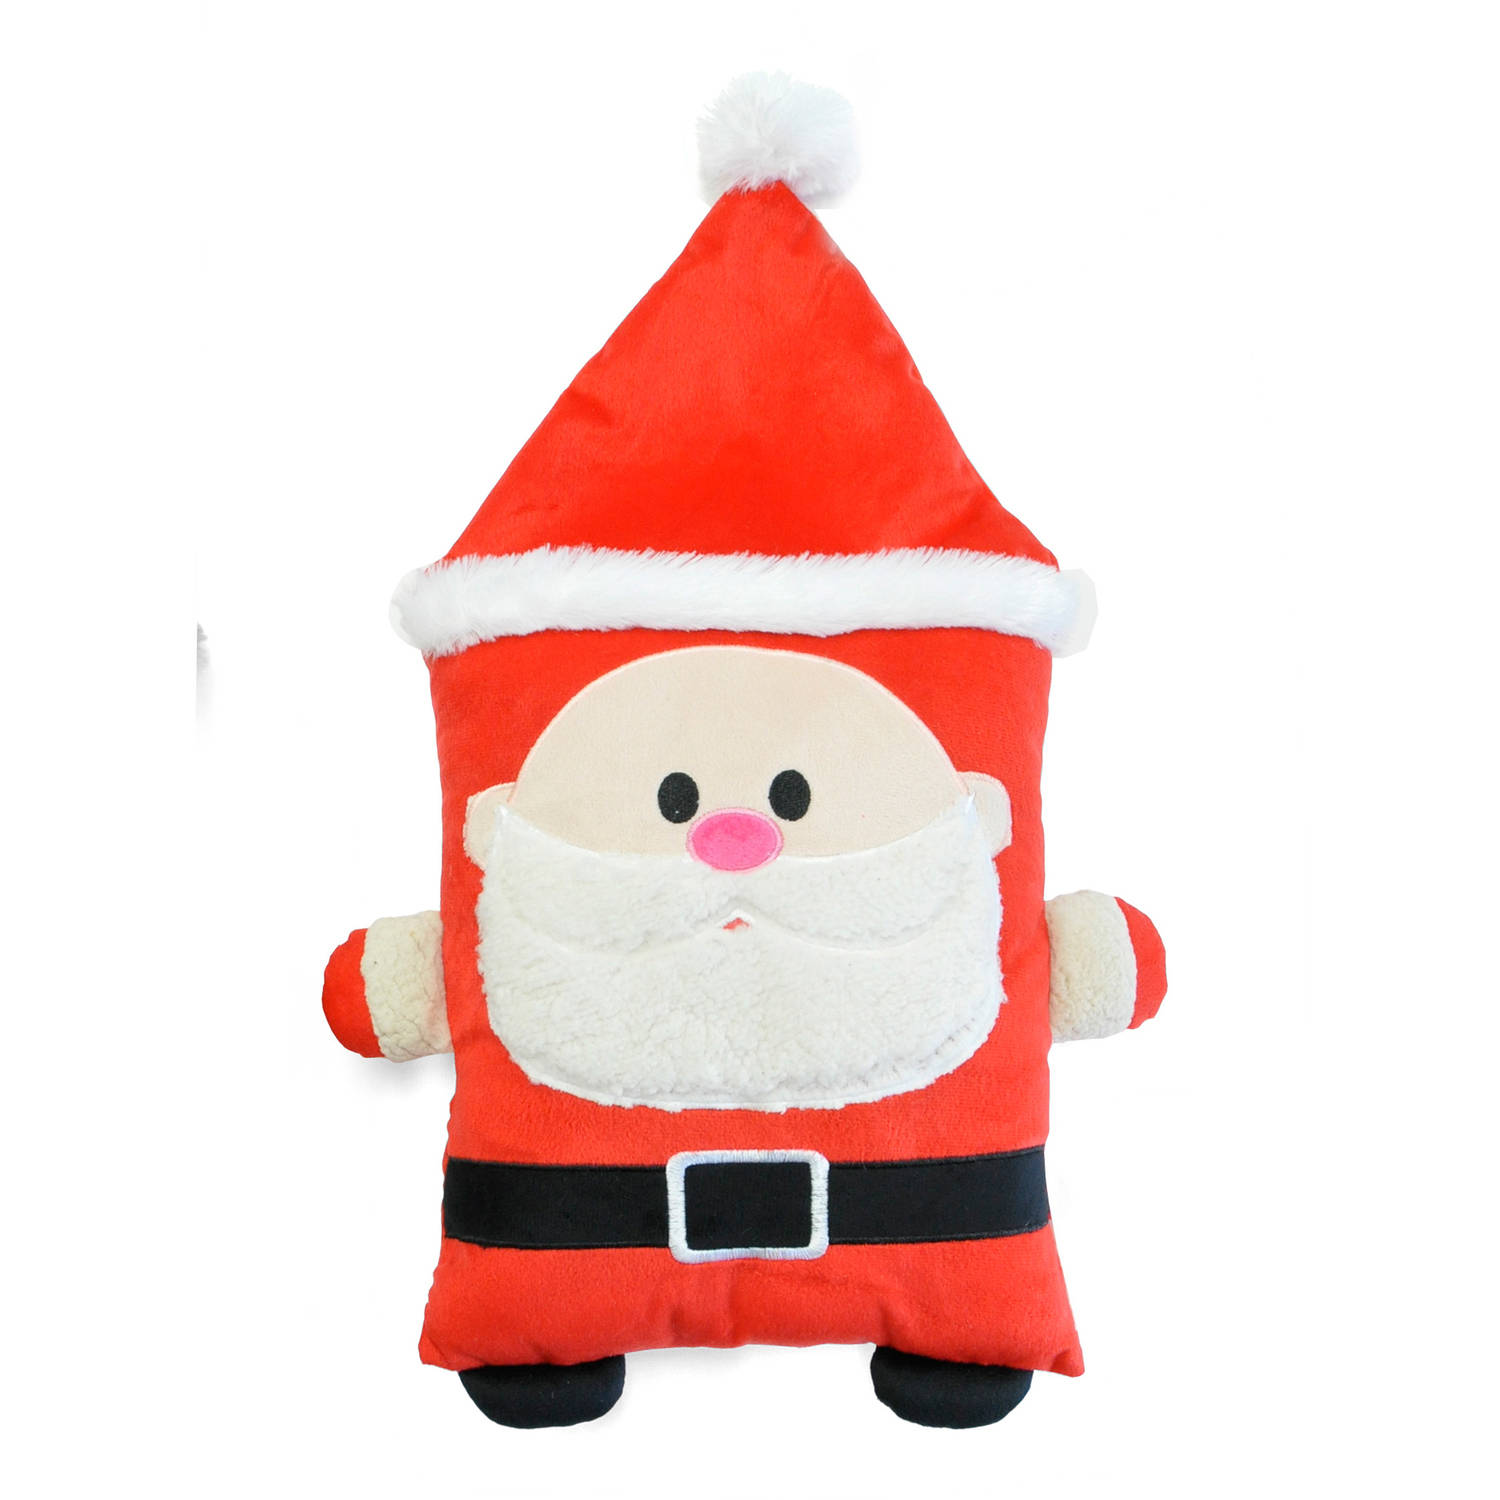 Generic Cuddly Crew Holiday Pillow, Santa